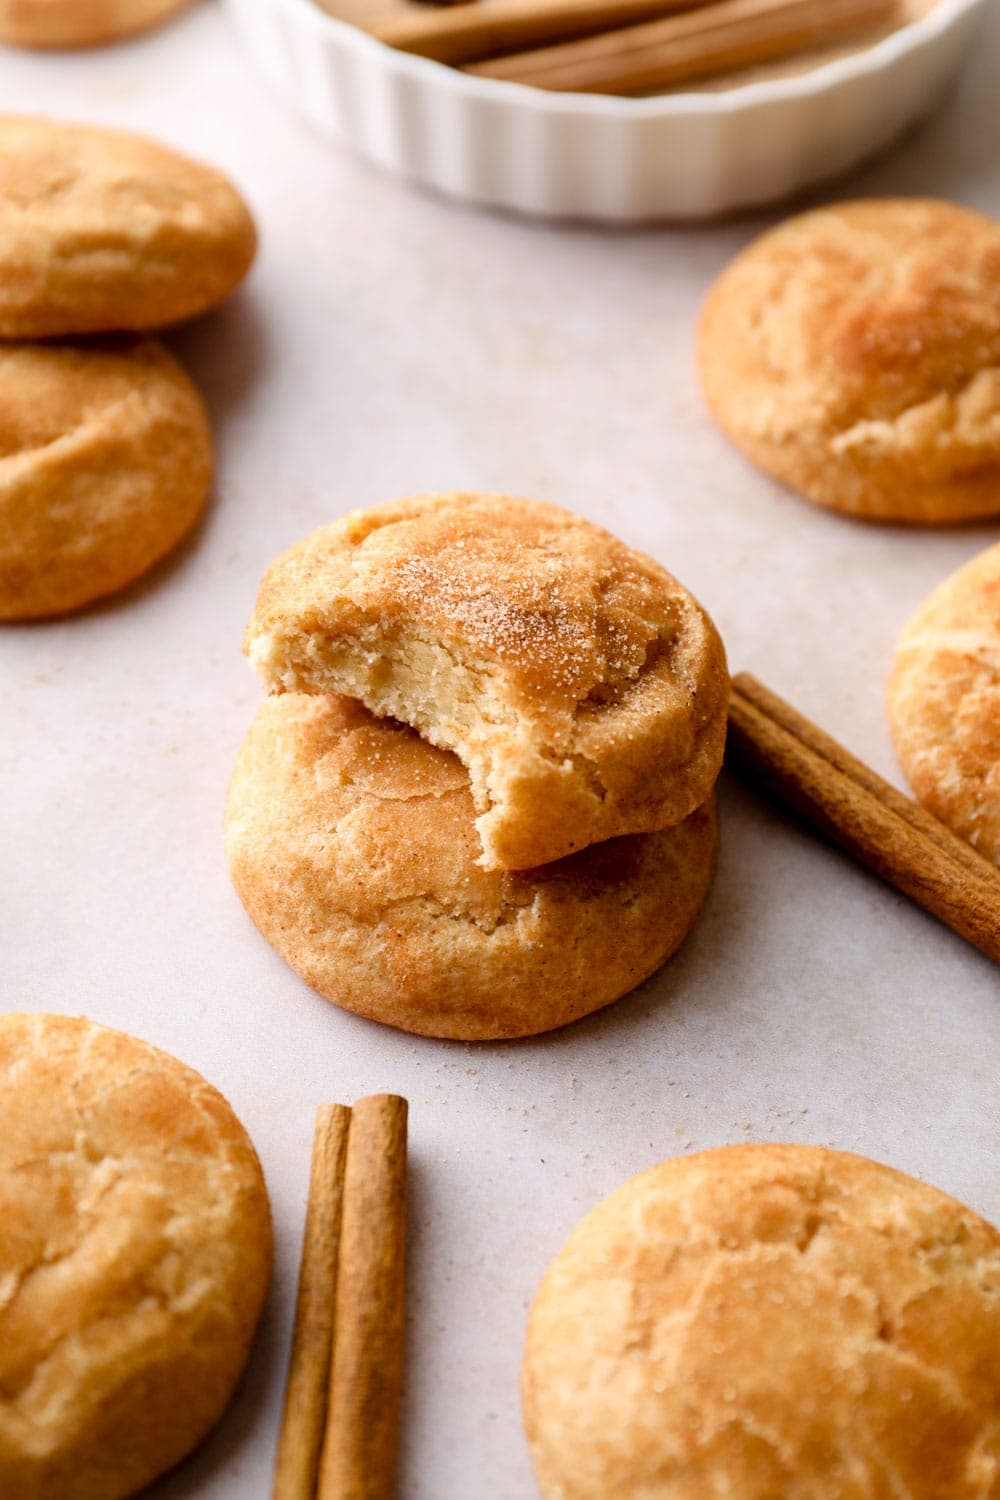 A stack of Gluten Free Snickerdoodles